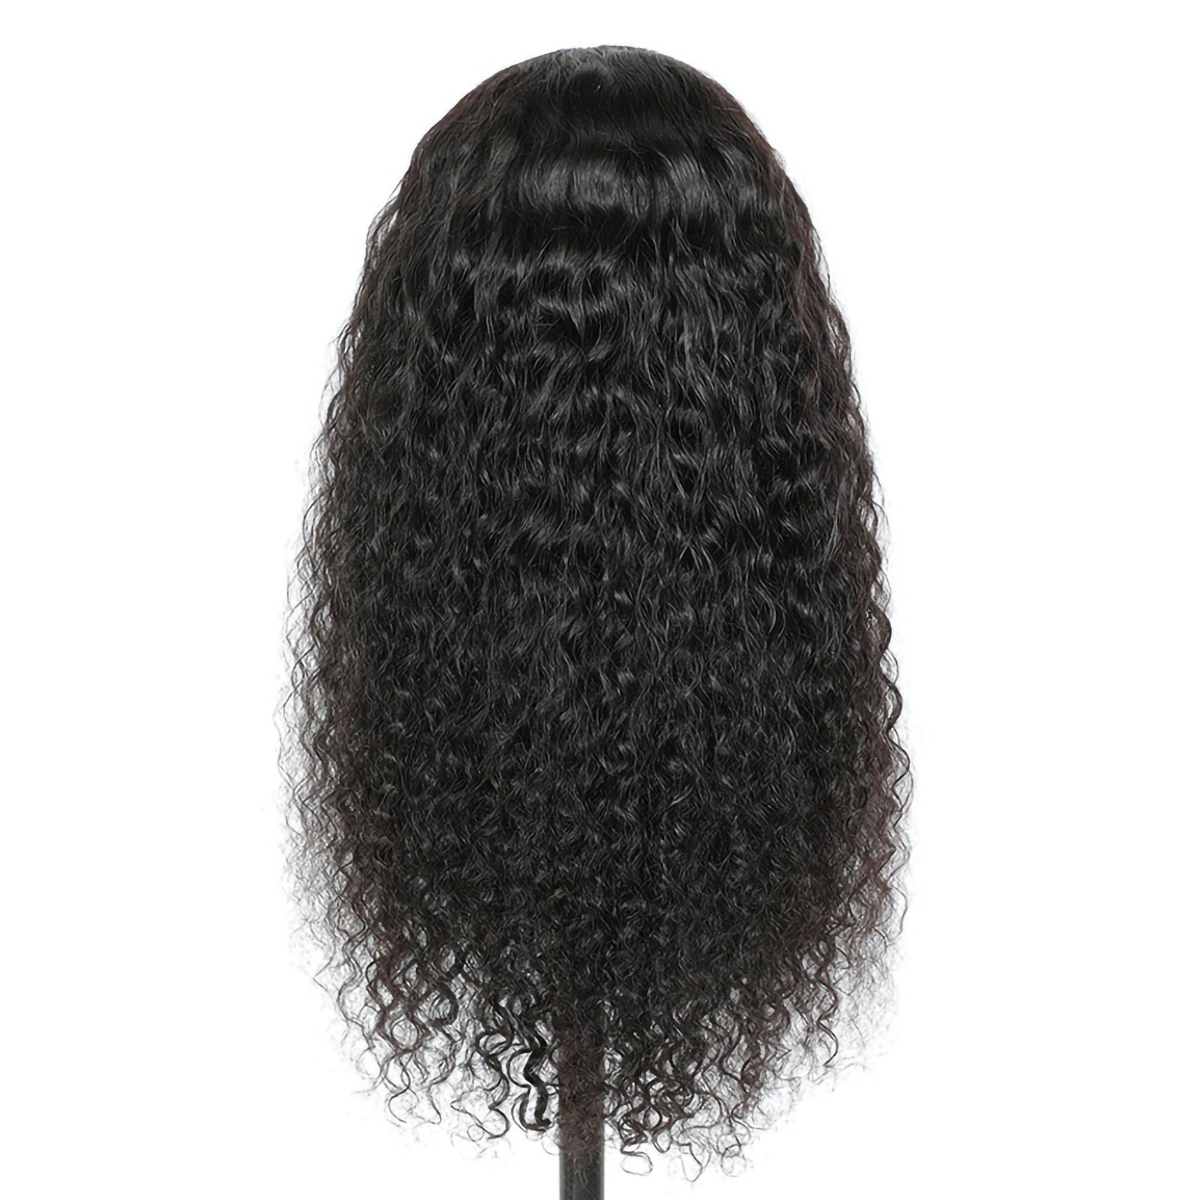 Water Wave 5x5 Lace Closure Wig